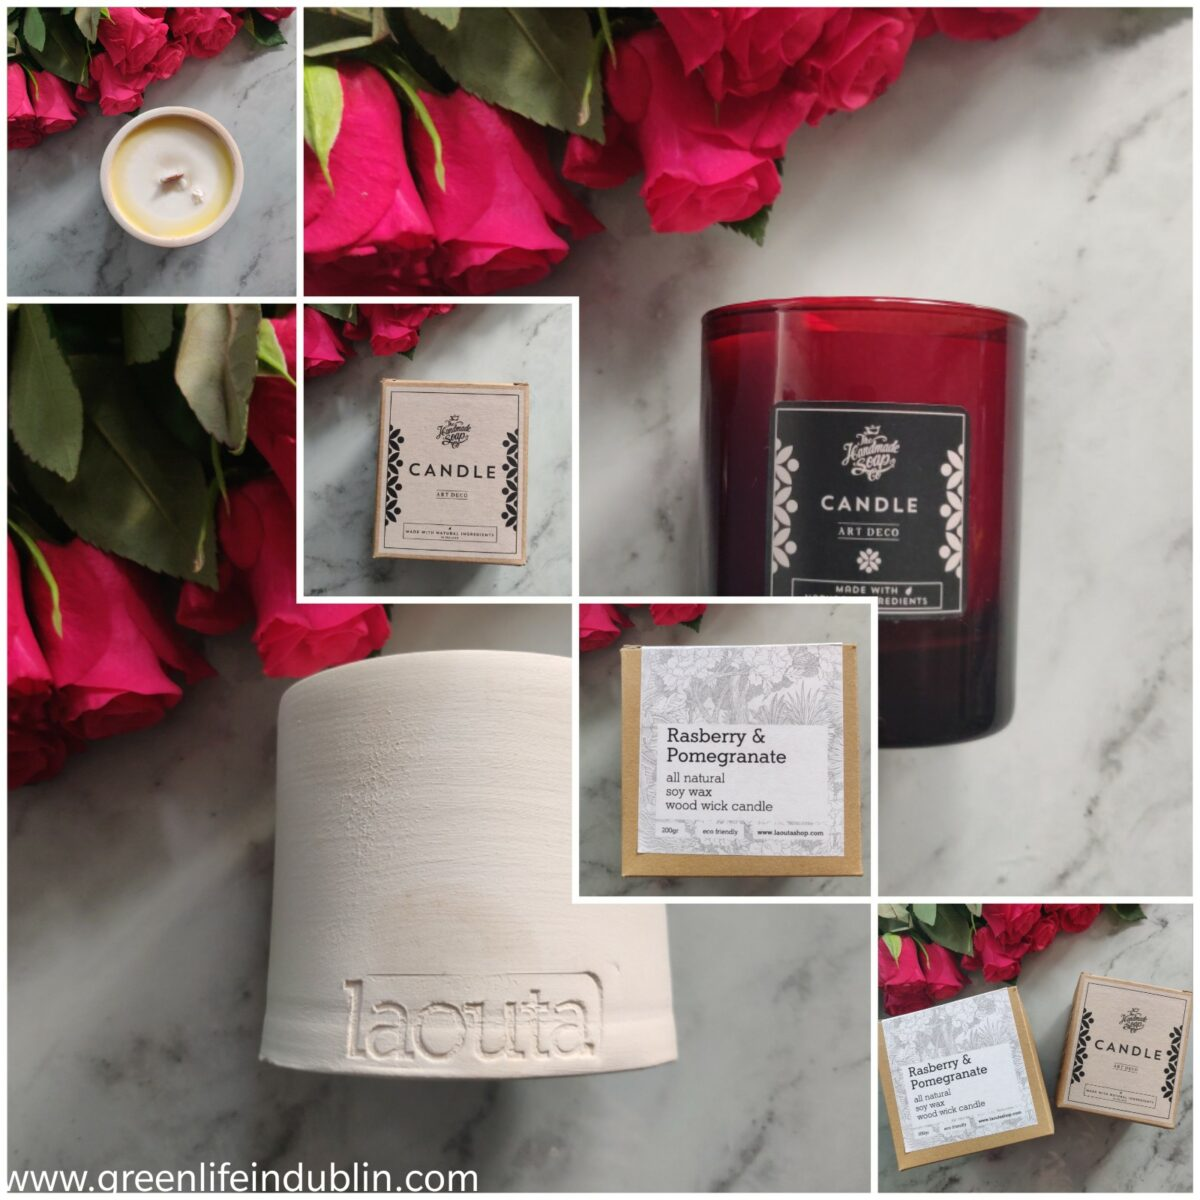 Love Lula Picks & Reviews – Laouta & The Handmade Soap Company Candles – Oct 2019